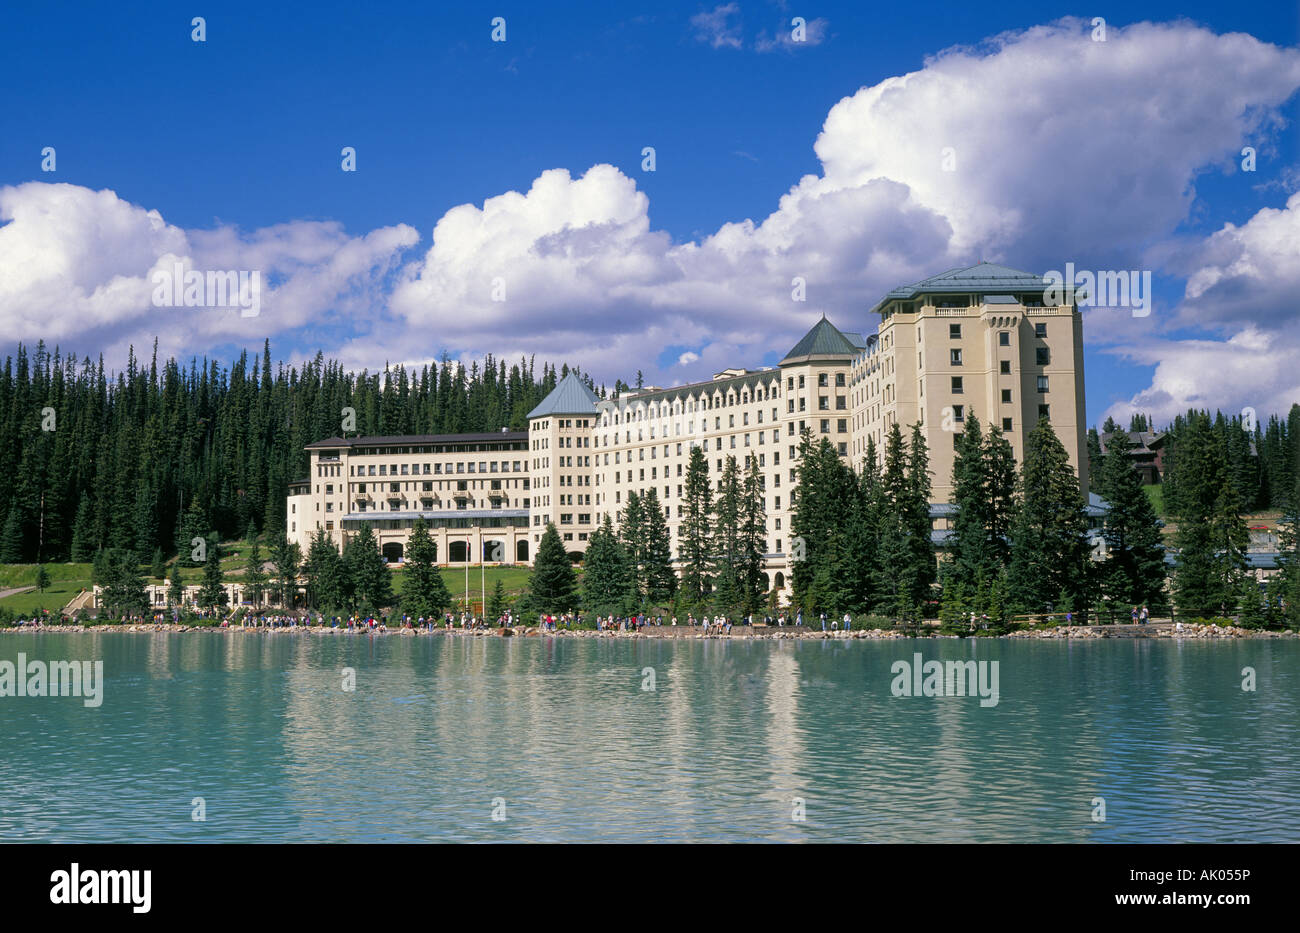 a view of the fairmont chateau lake louise a classic mountain